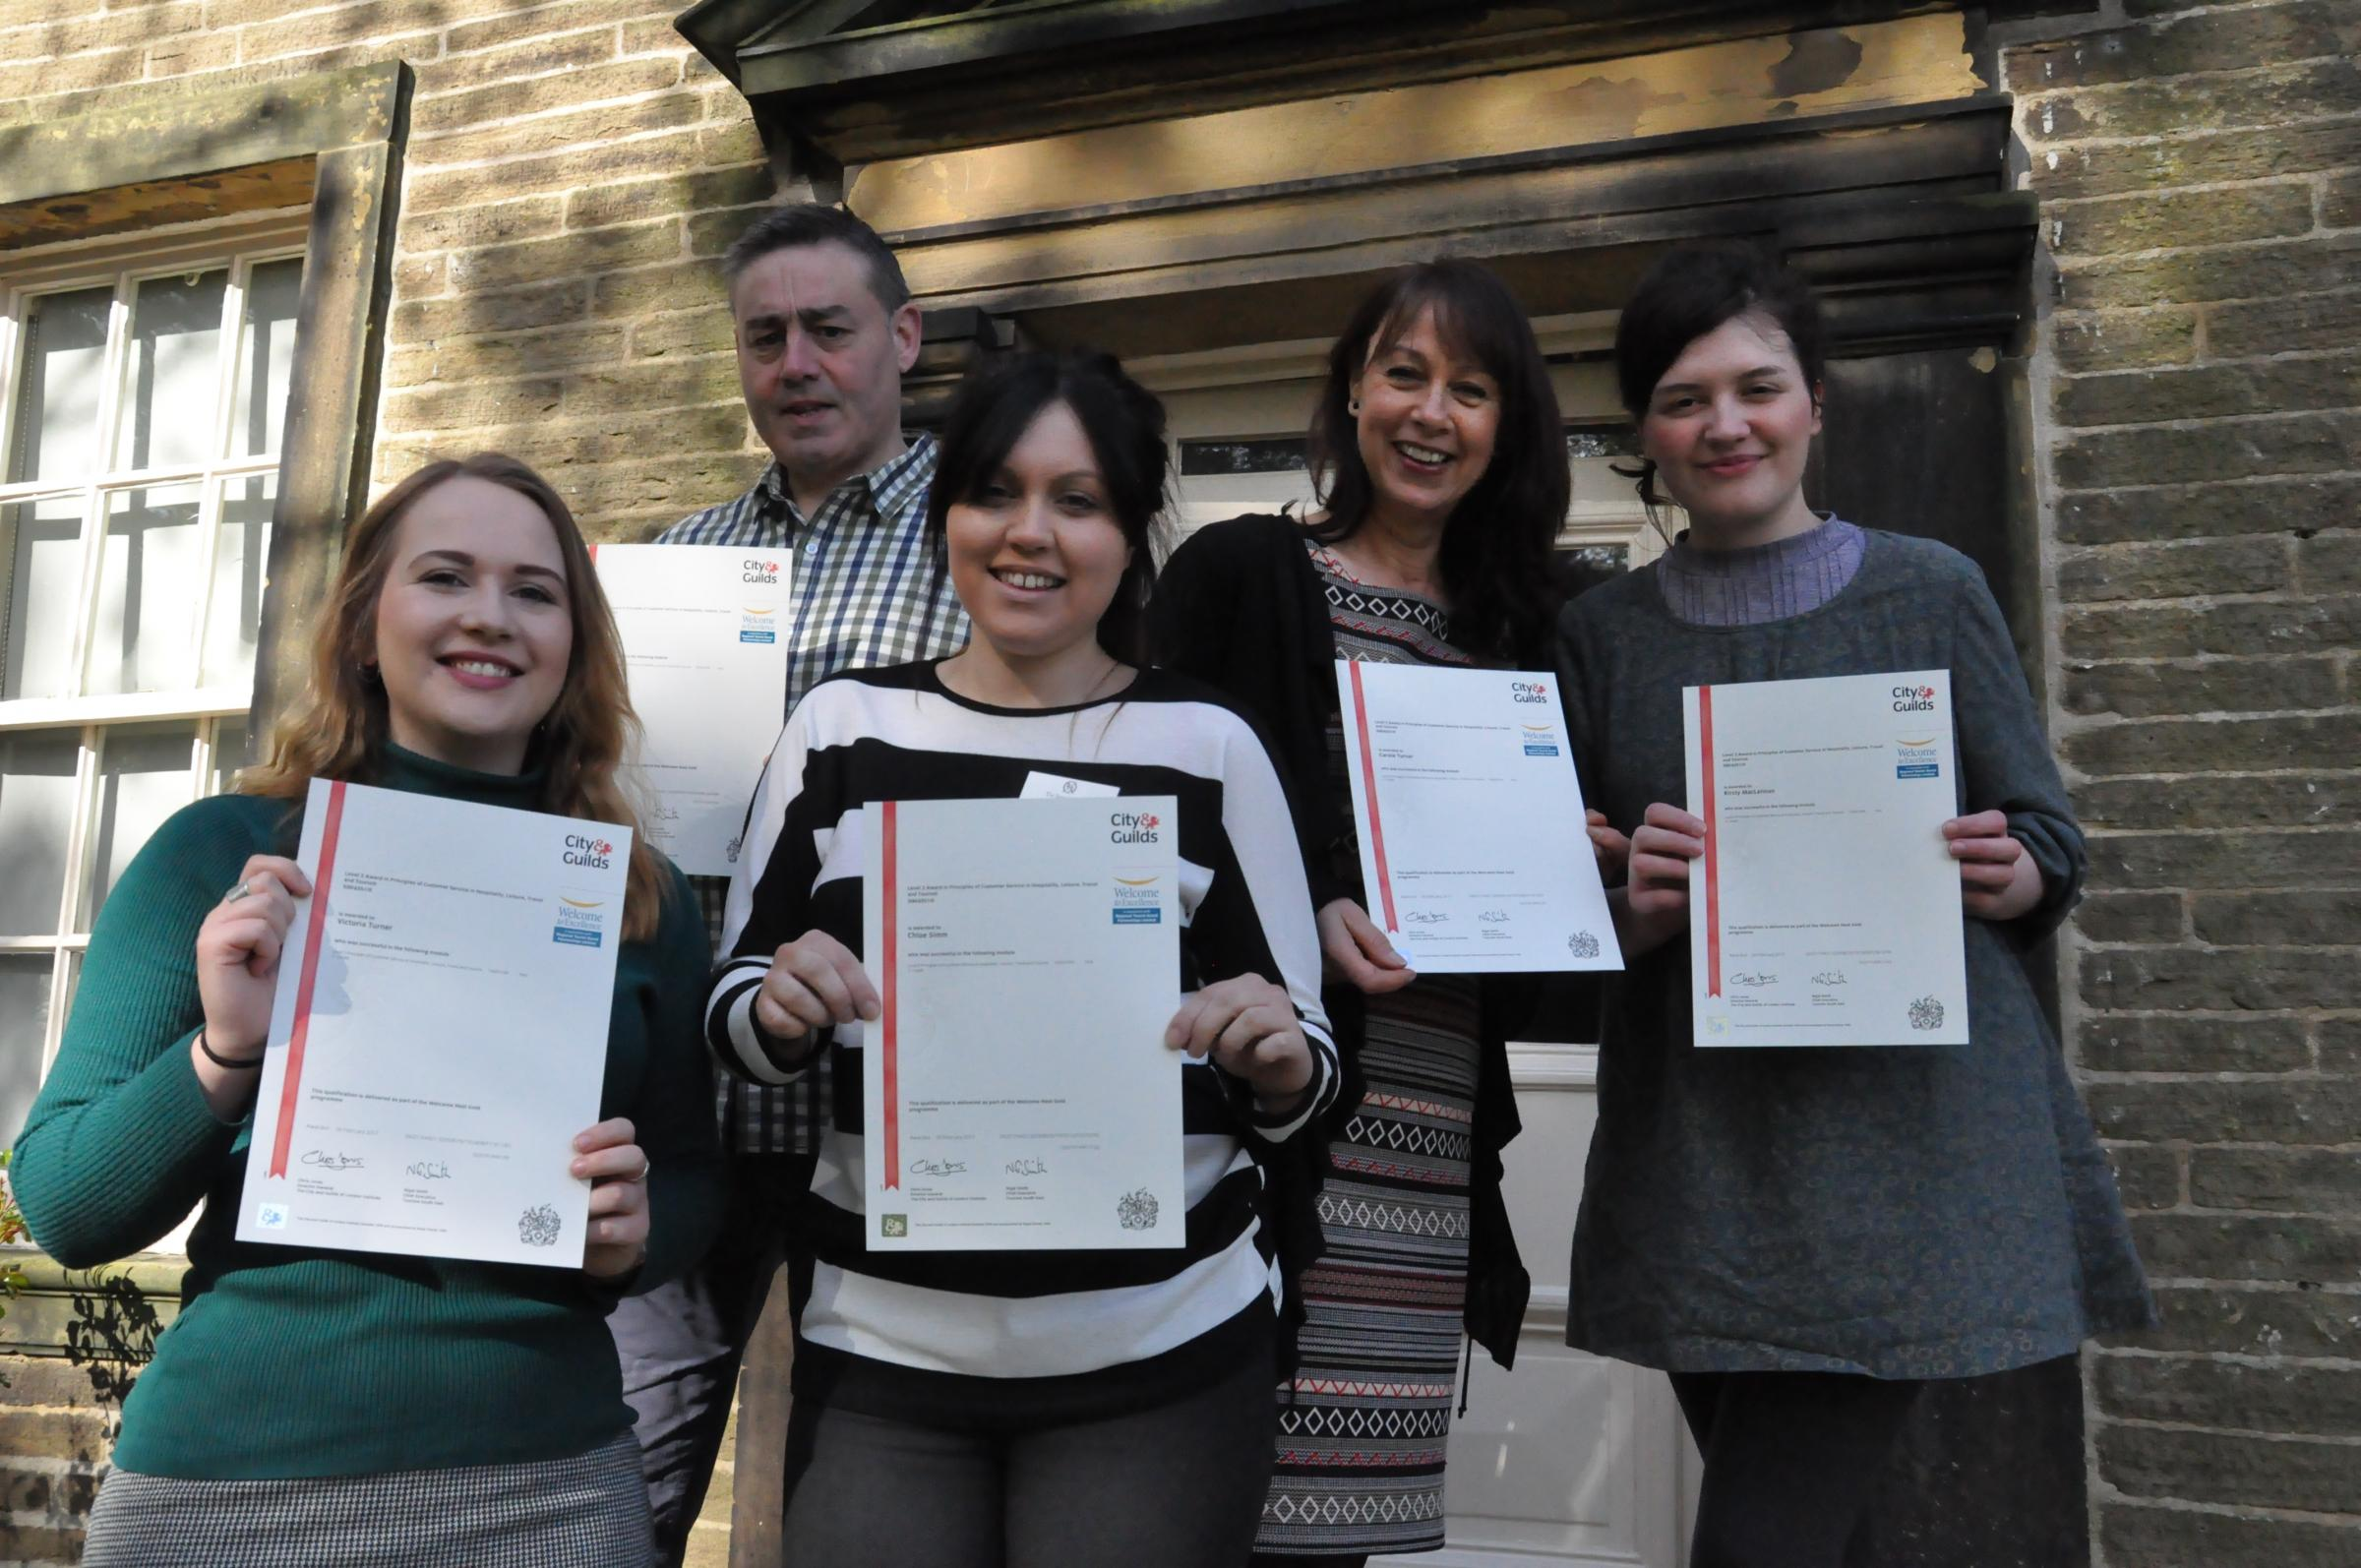 Brontë Parsonage Museum staff have been awarded litigations for improving customer service skills, from left, Victoria Turner, Mark Davies, Chloe Simm, Carole Turner, Kirsty Maclennan